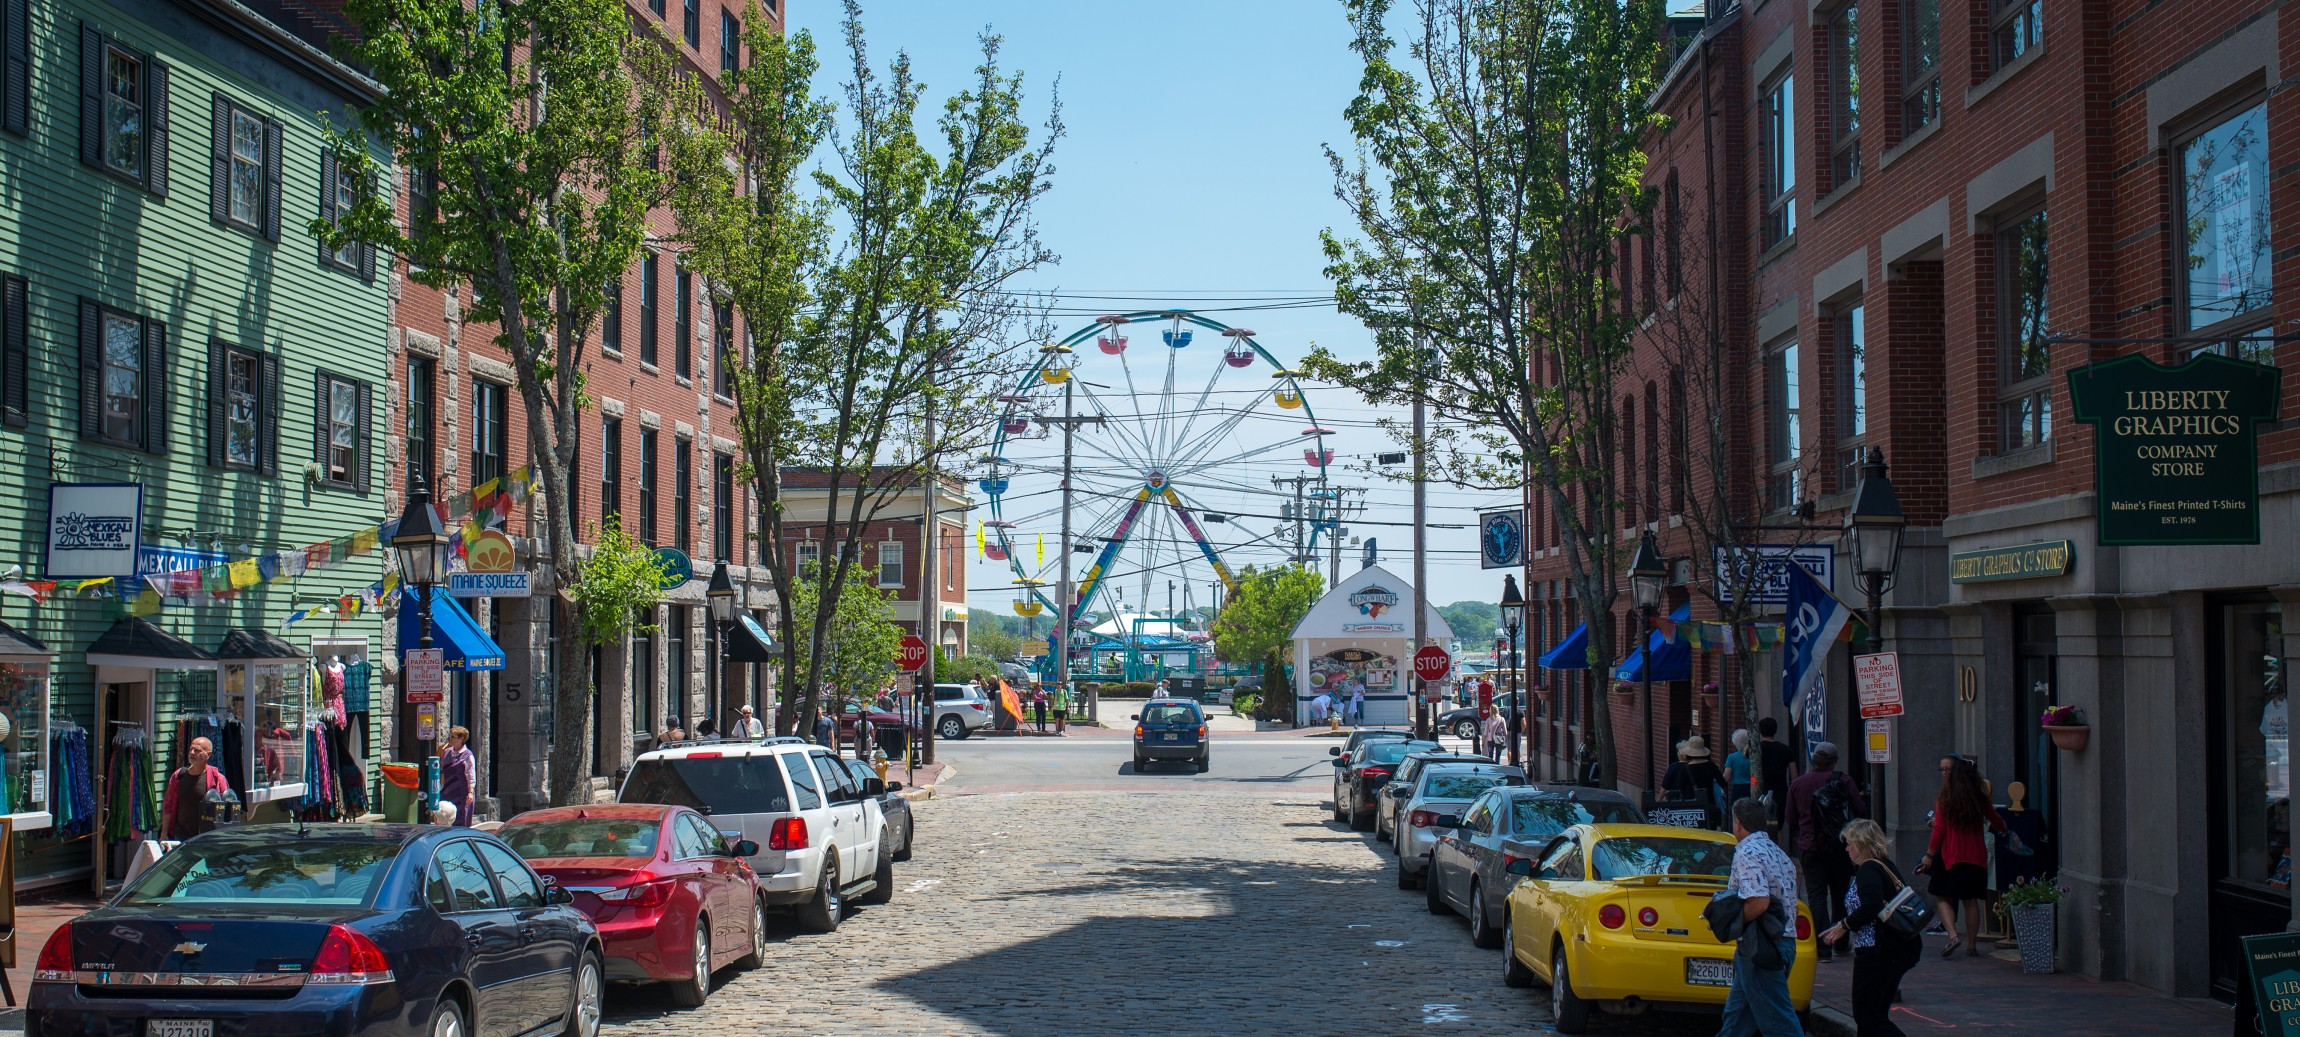 BOSTON TRIPPIN': Portland   It may not have the quirky street cred of it's Oregon sister city, but Portland, Maine is a funky little fishing town that's well worth the two hour trip from Bean Town. The harbor views are picture-perfect enough to make all your Insta followers jealous -- especially from the top of Portland Observatory. While you're oceanside, stop for a drink and some local music at the Portland Lobster Company or nearby Liquid Riot Bottling Co., a distillery, restaurant and bar in one. Keep rockin' all night with a concert at One Longfellow Square or Port City Music Hall -- and then to  cure your hangover next morning, there's only one answer:  The Holy Donut.